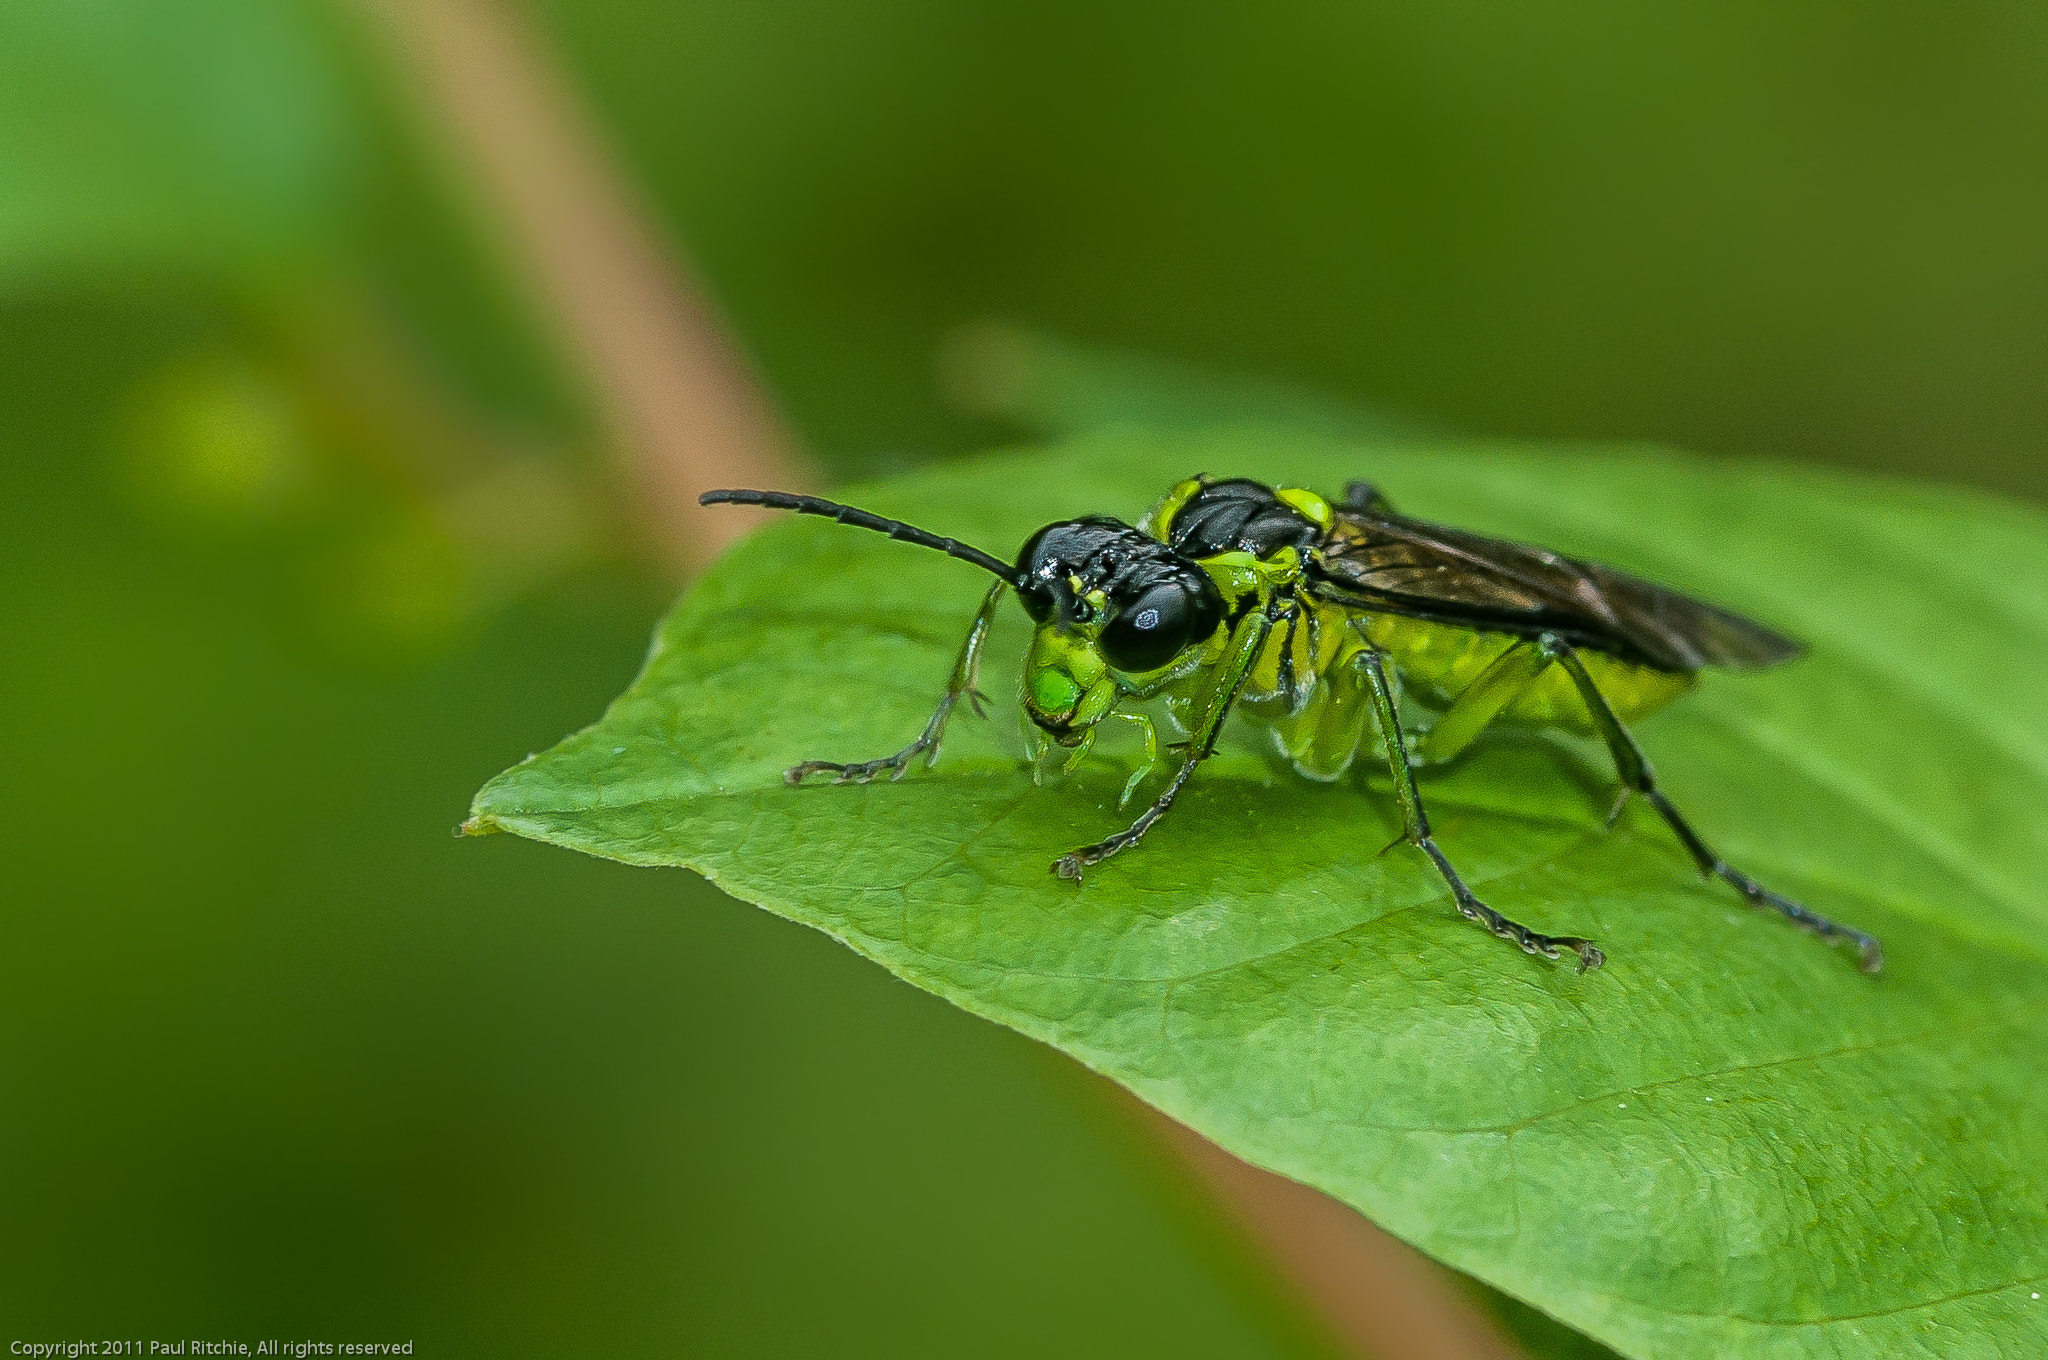 Photograph Green-legged Sawfly (Tenthredo mesomelas) by Paul Ritchie on 500px